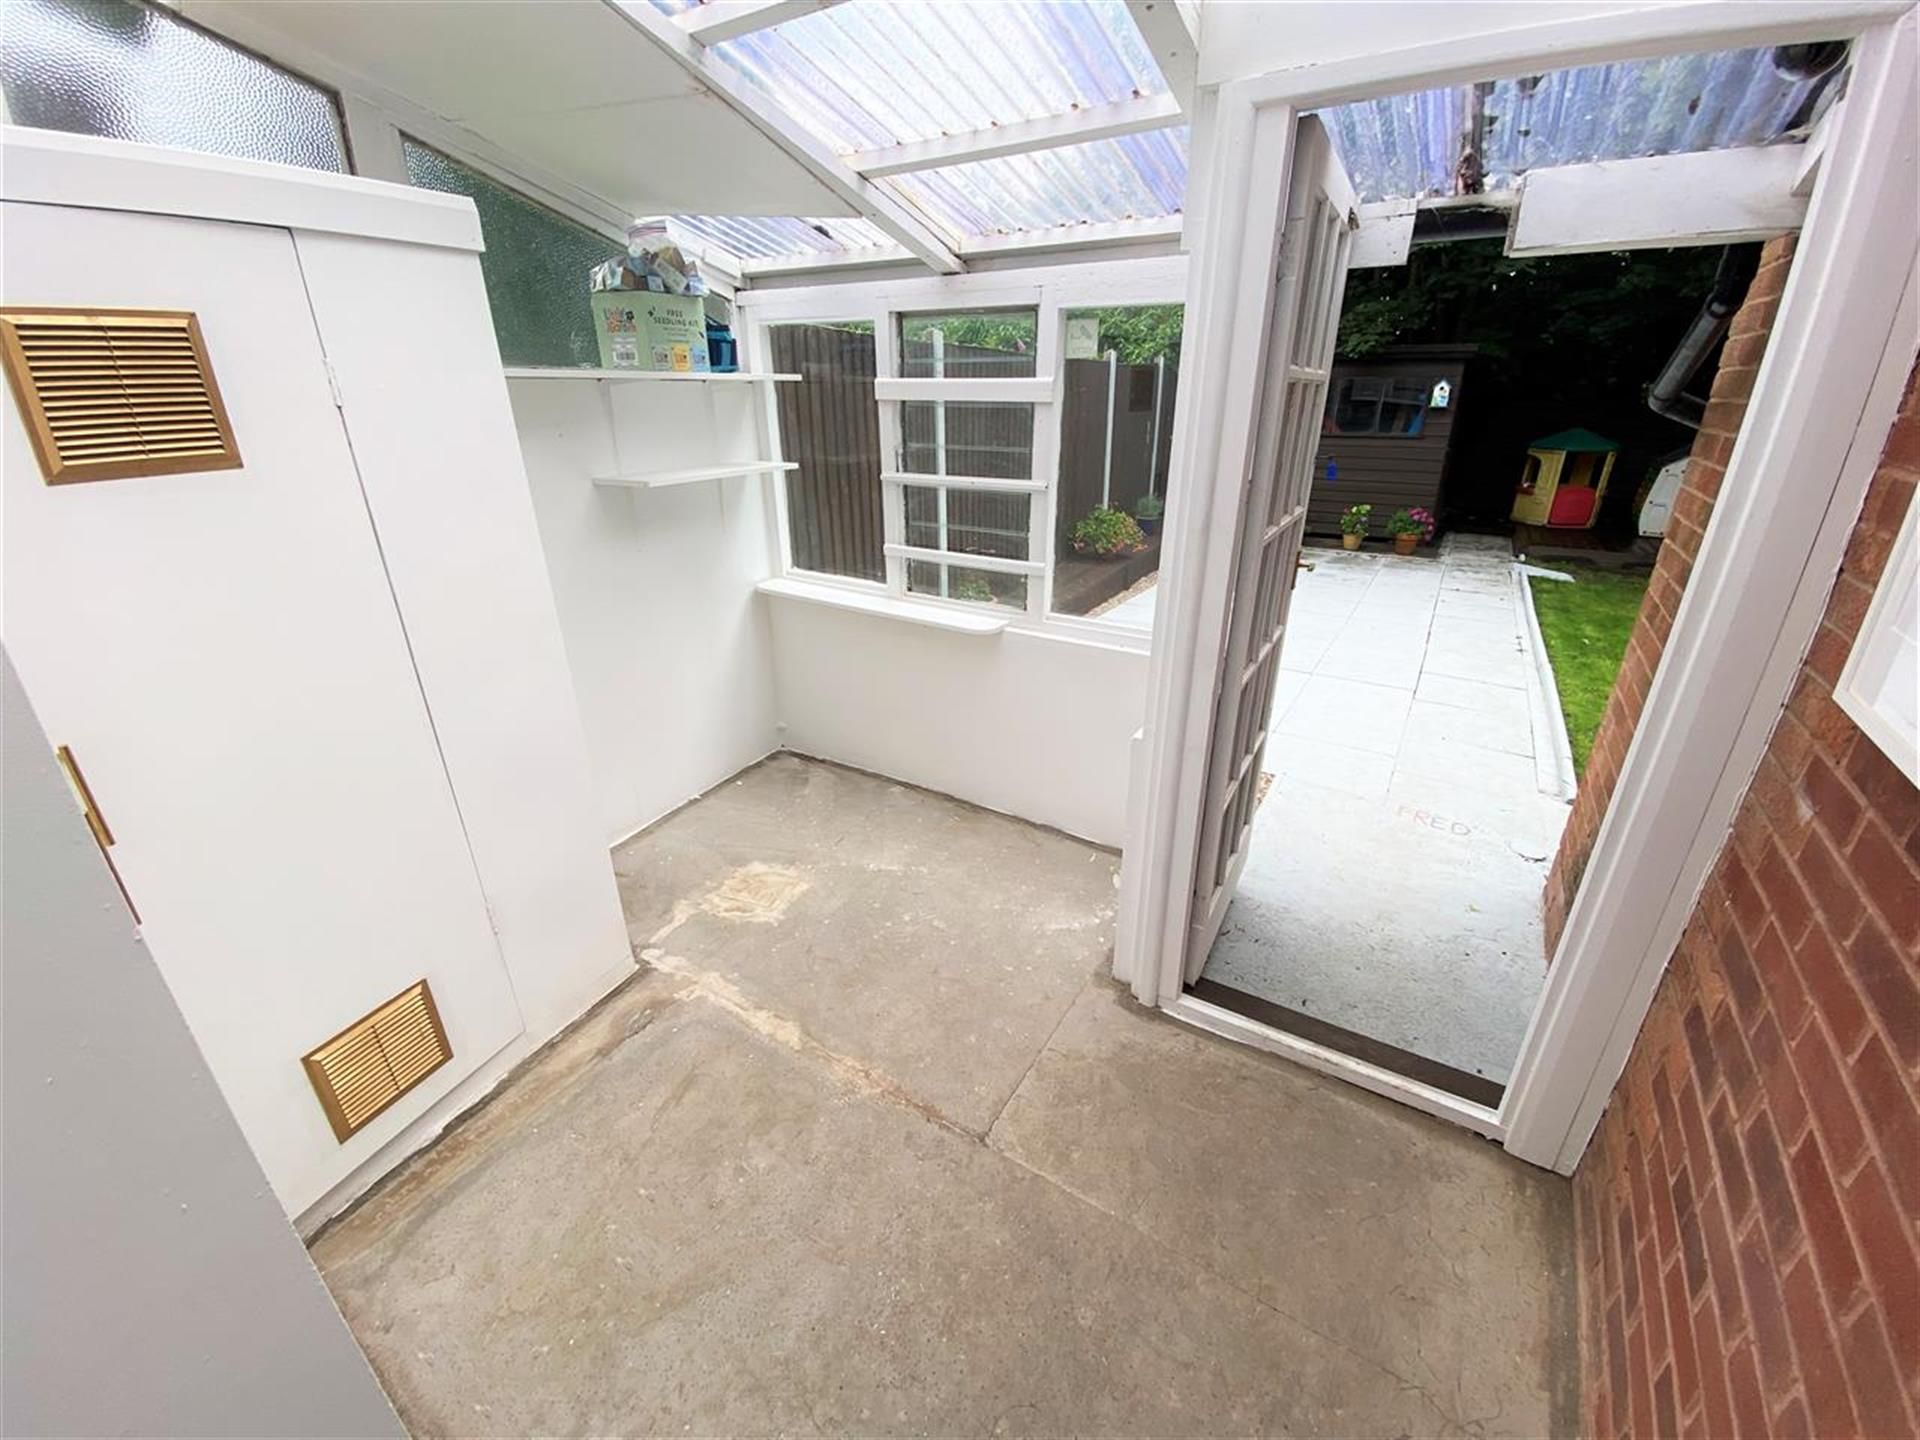 3 Bedroom Semi-detached House For Sale - Utility/Conservatory Area